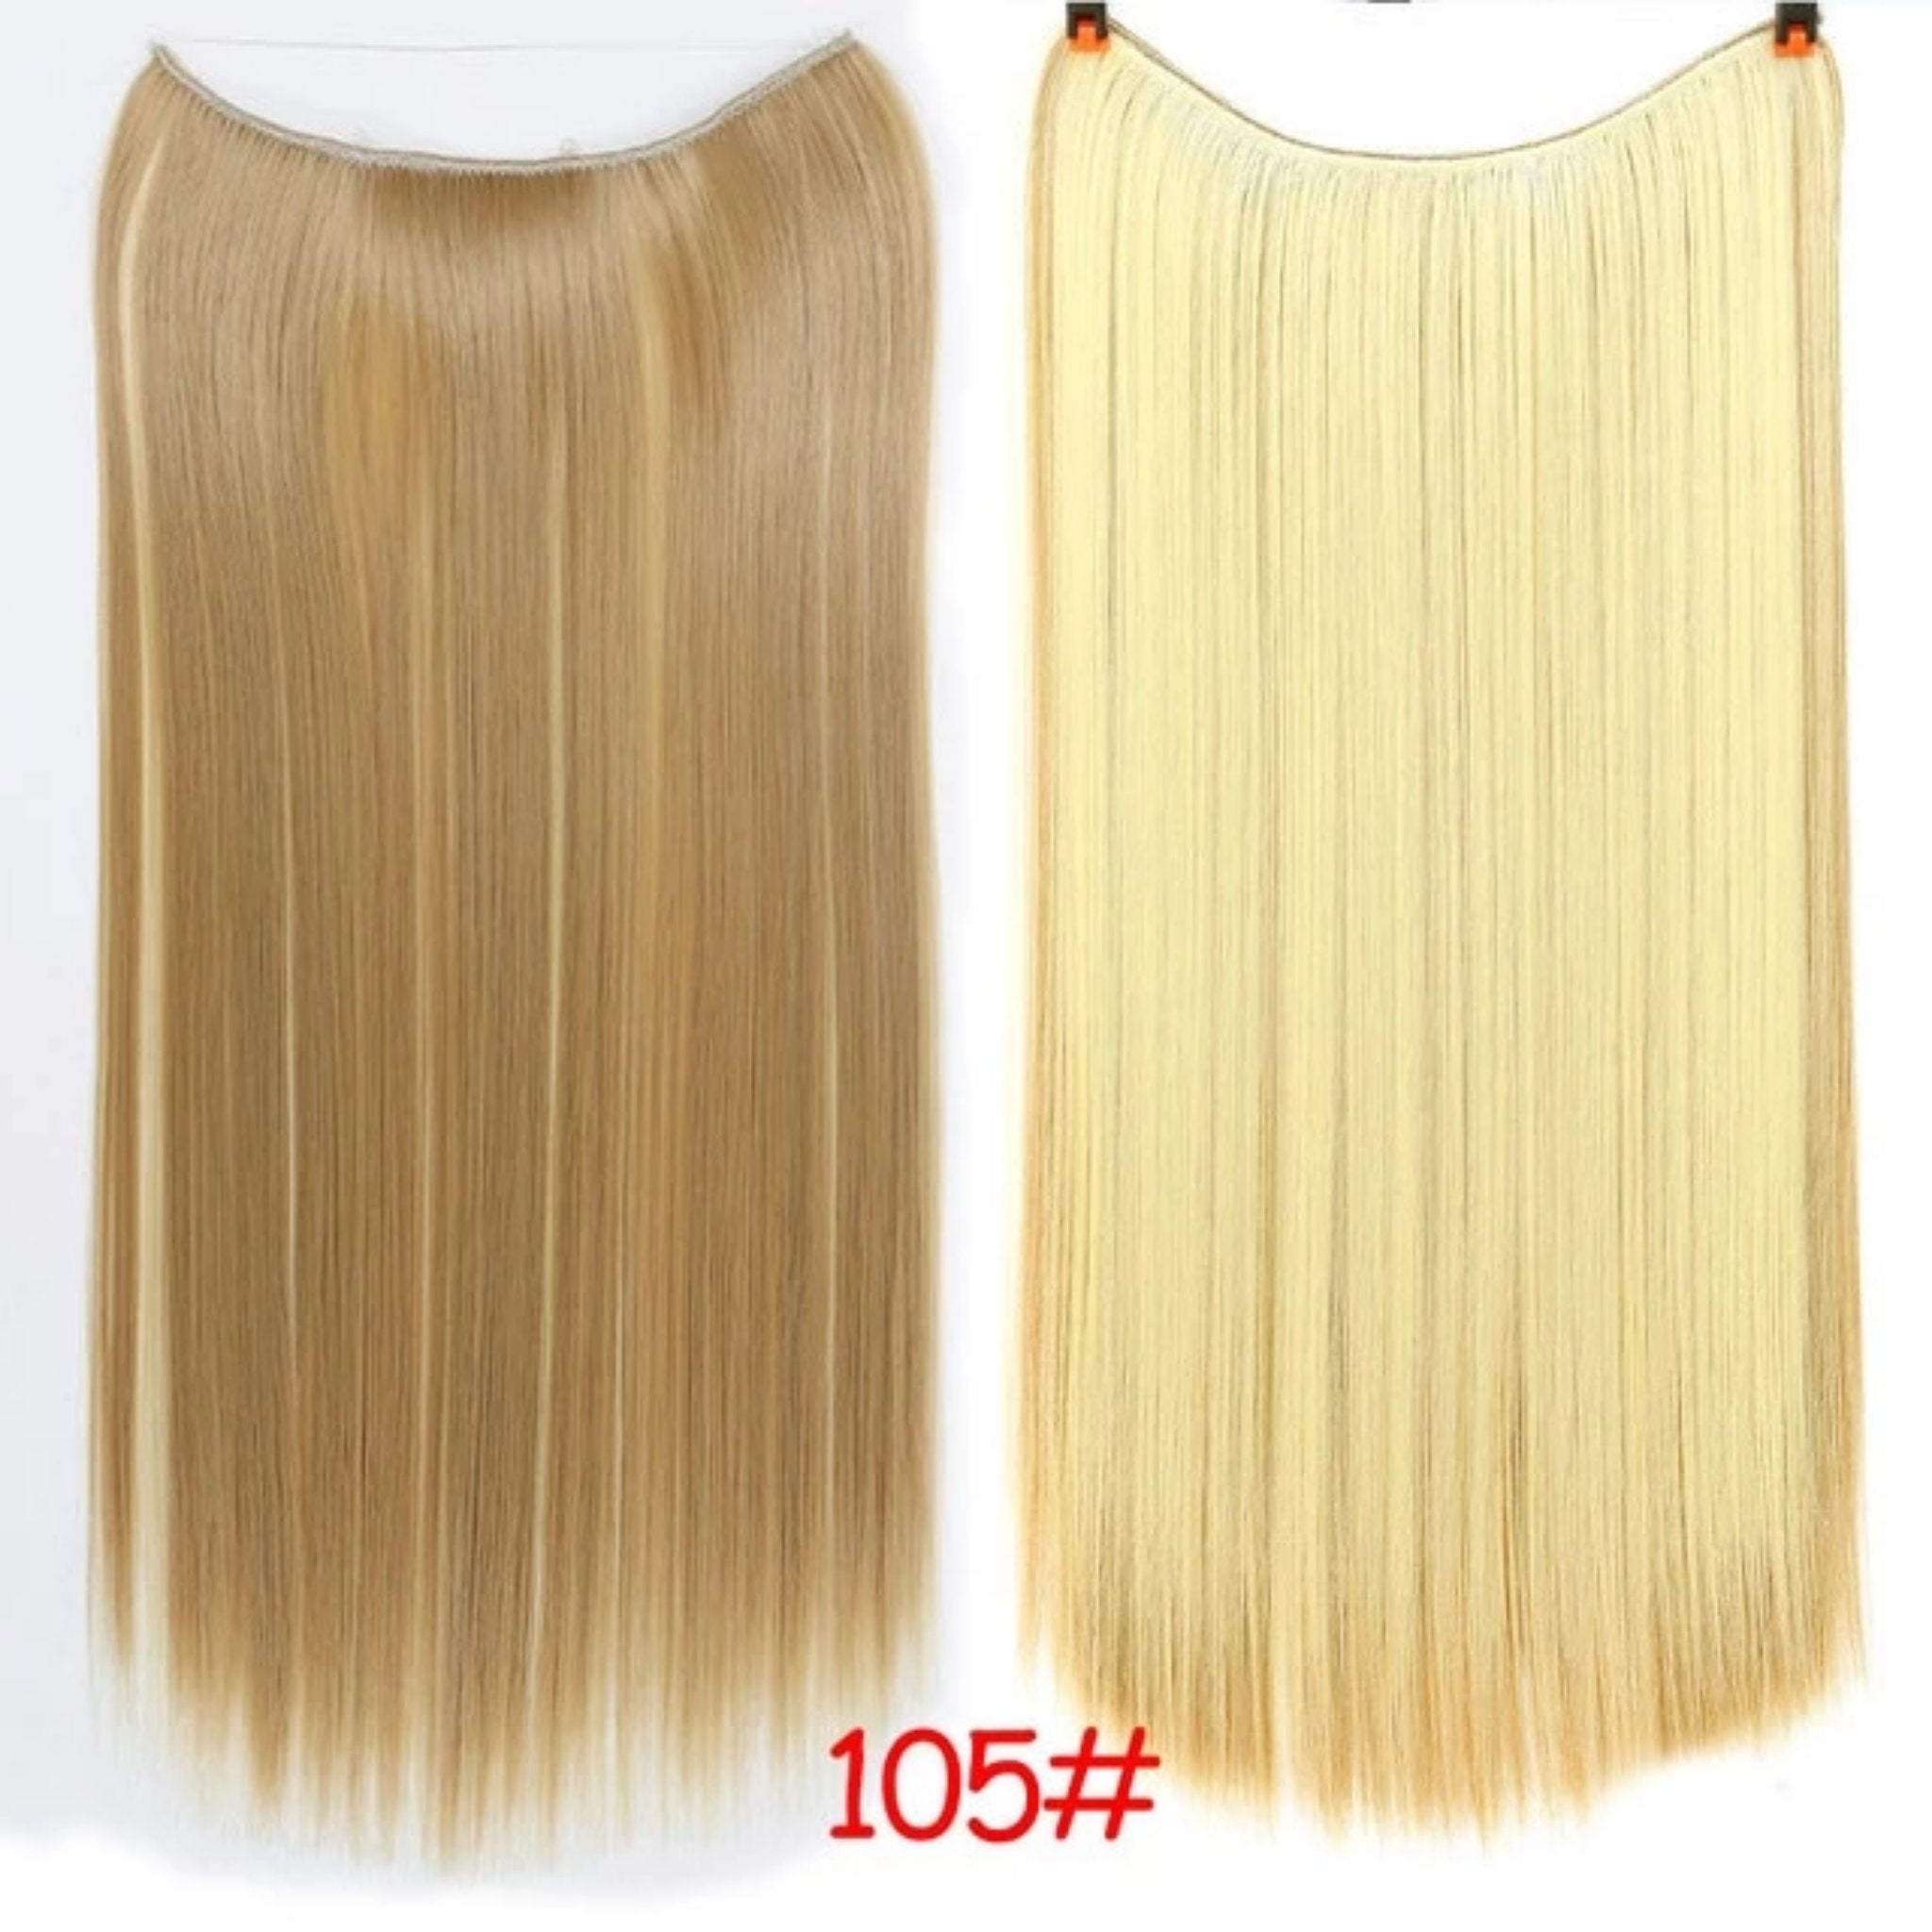 One Piece Halo Hair Extensions